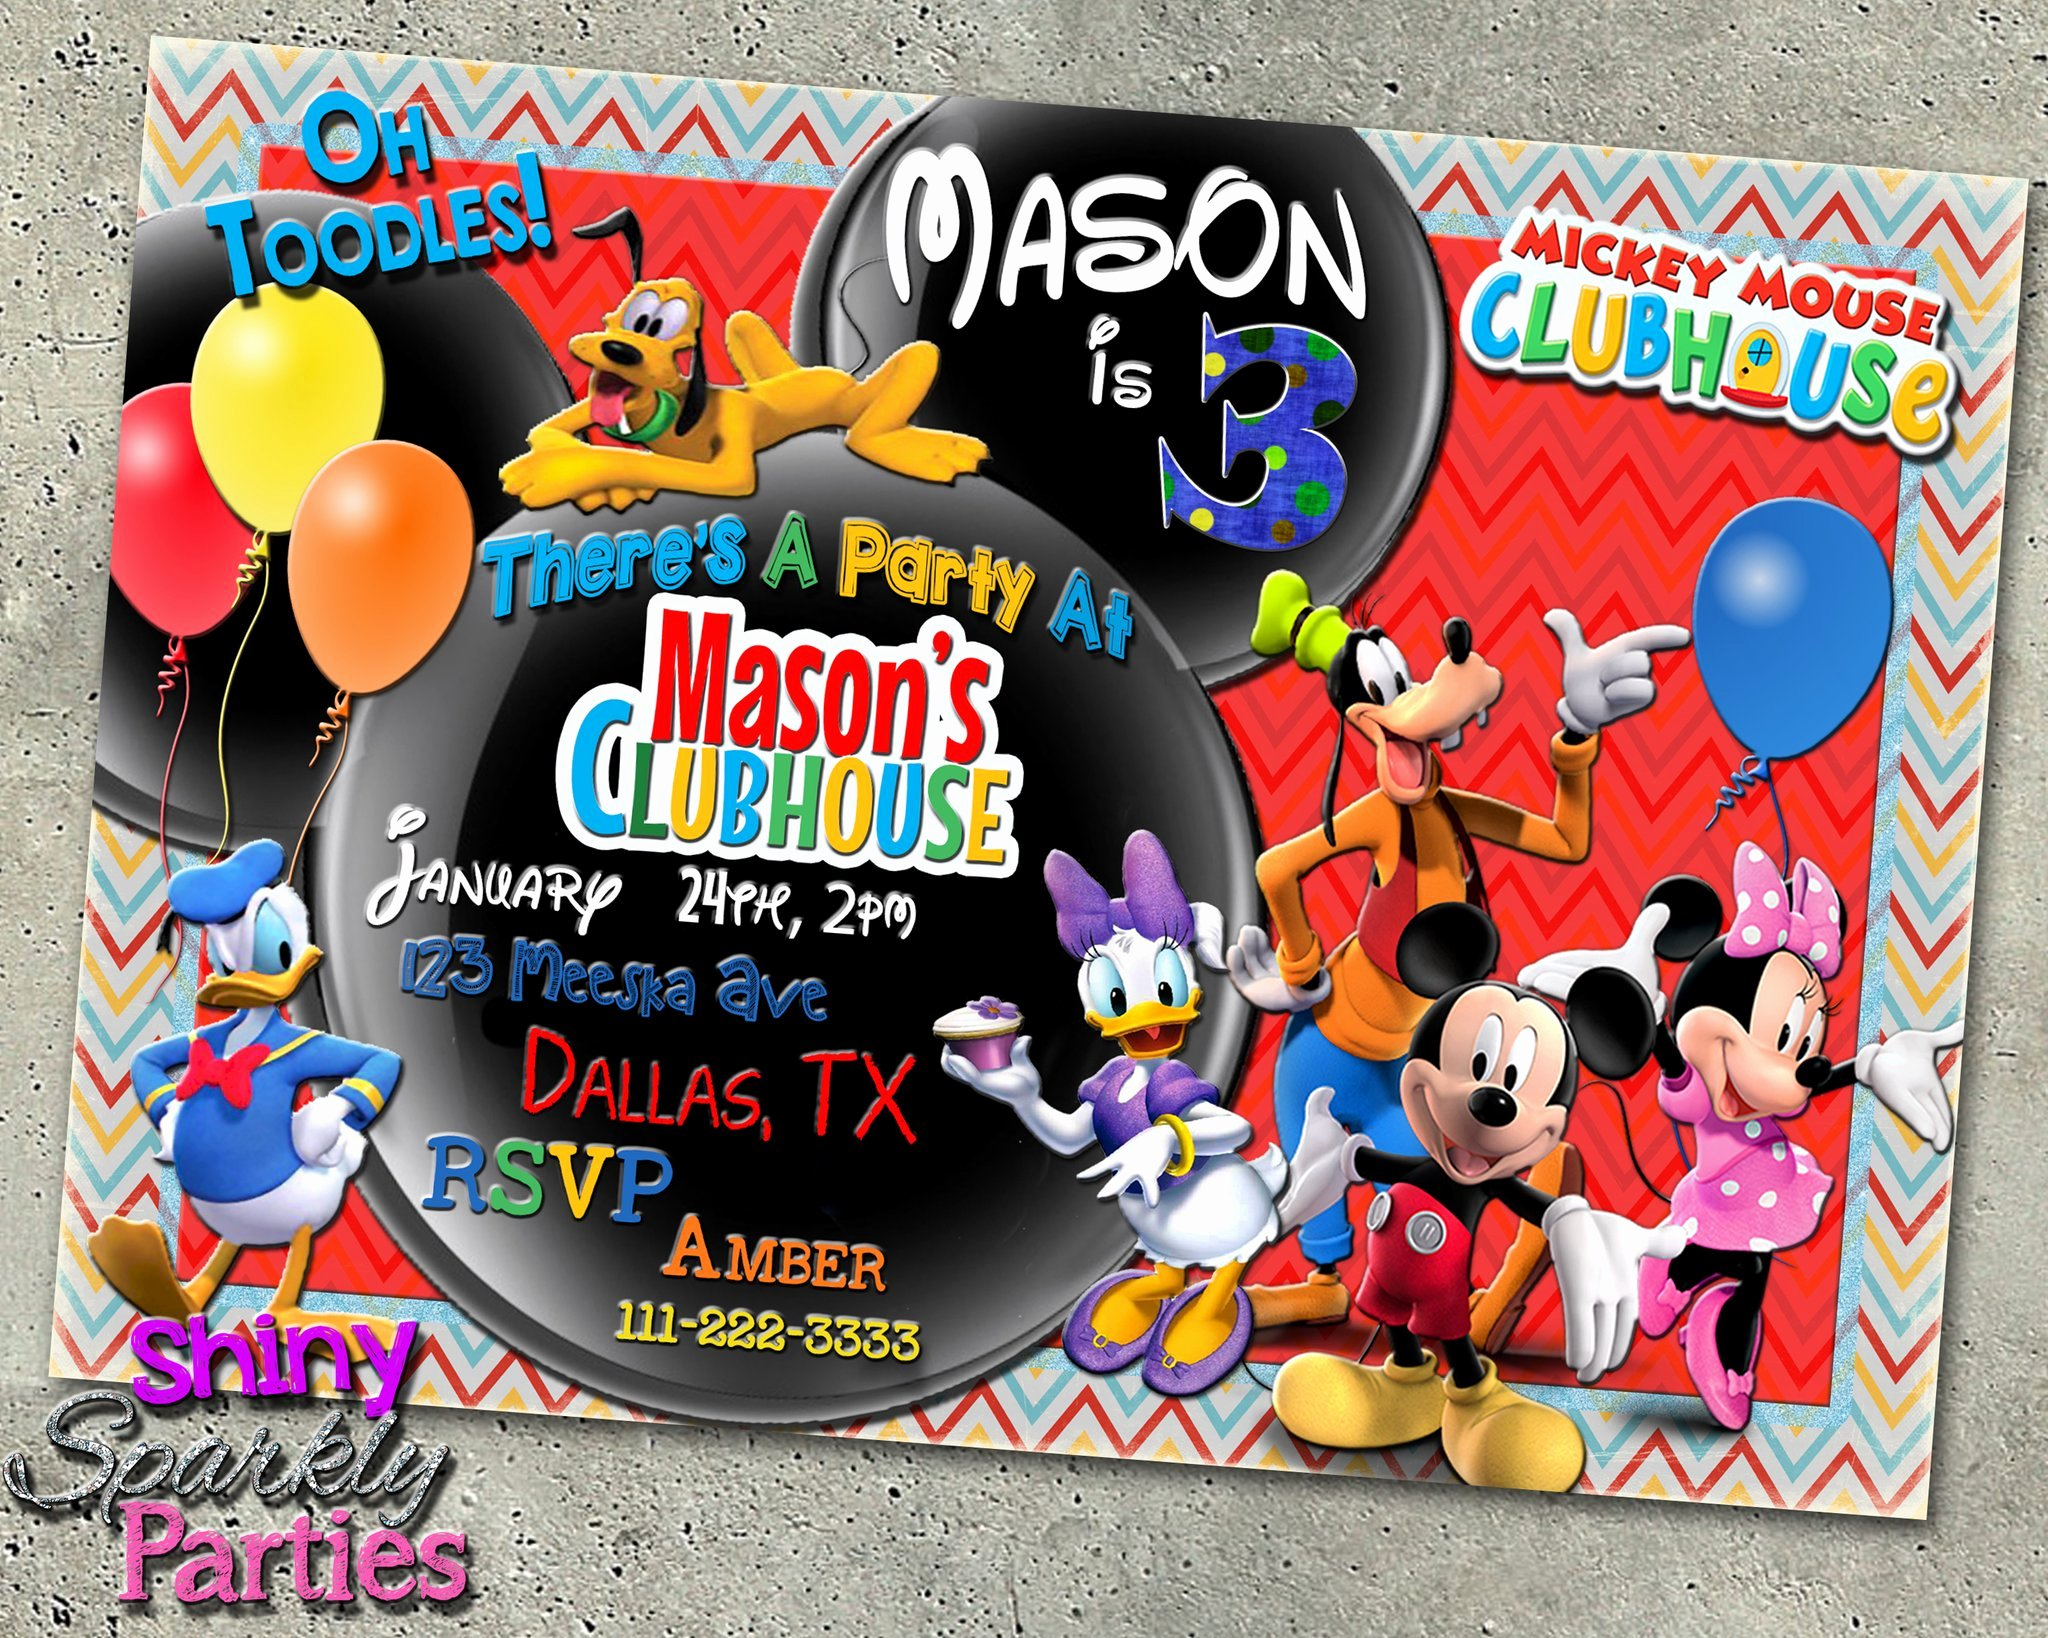 Mickey Mouse Clubhouse Birthday Invitations Lovely Mickey Mouse Clubhouse Birthday Invitation forever Fab